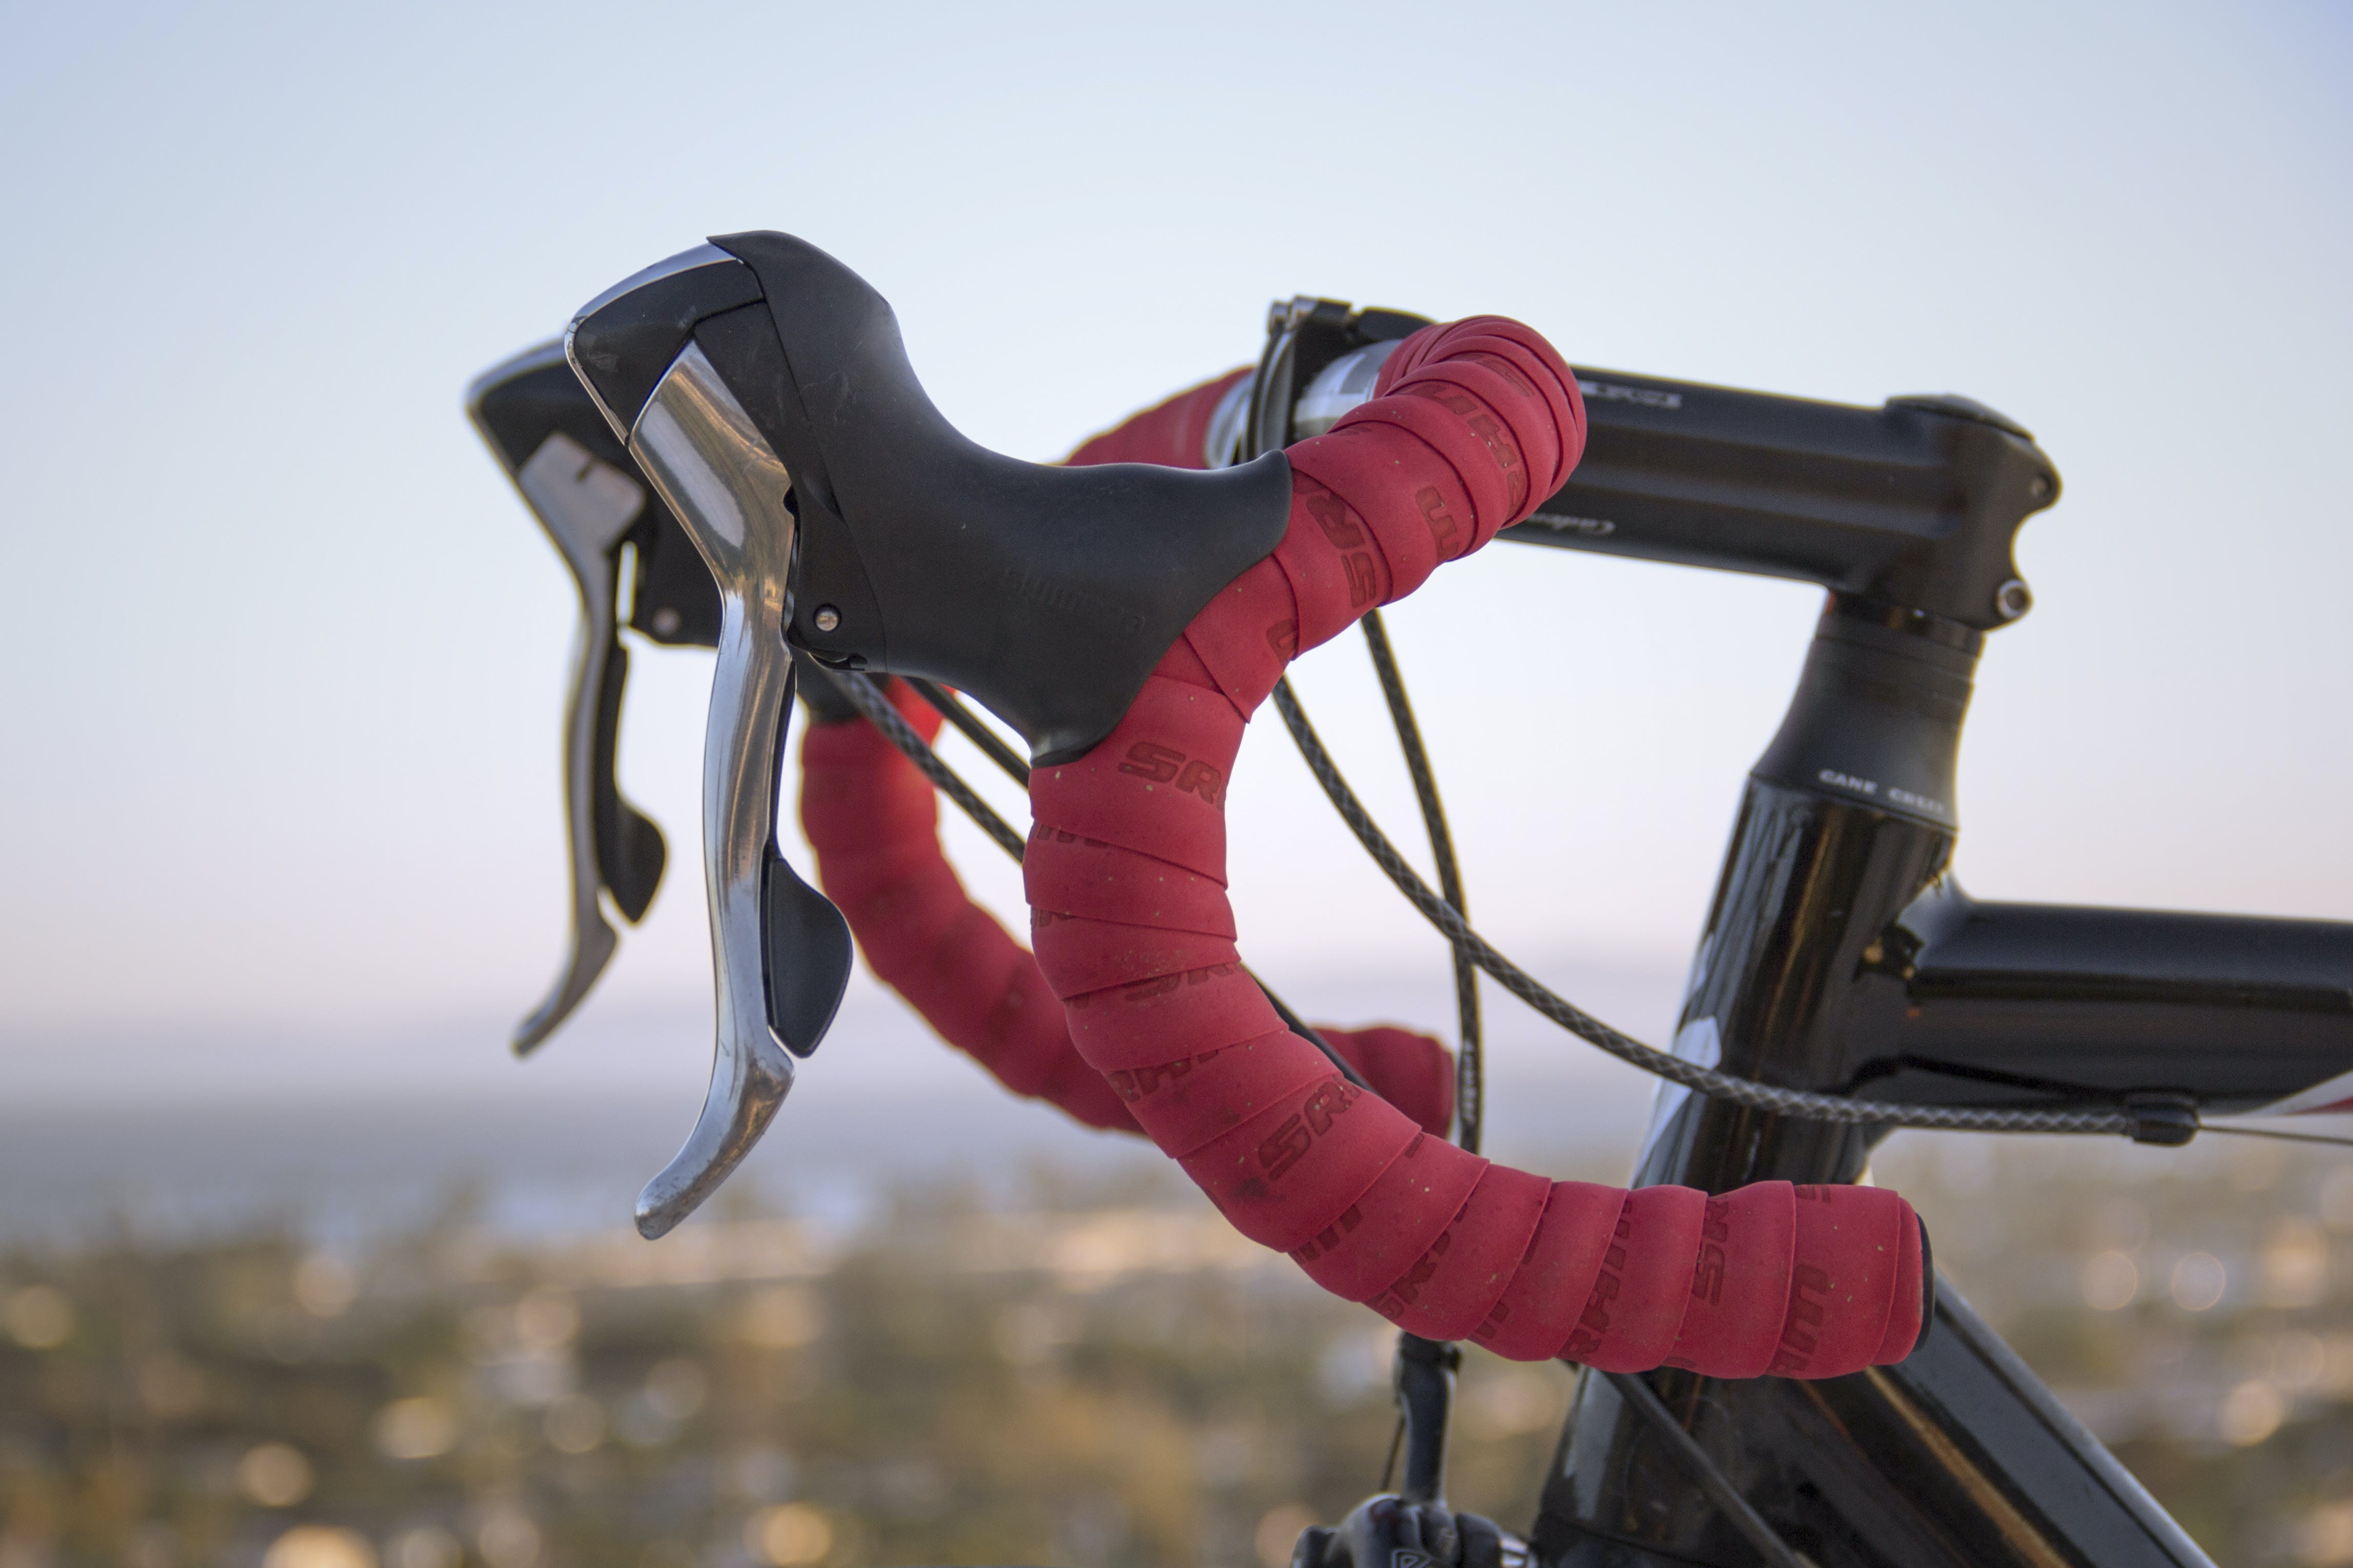 Red and Black Road Bicycle